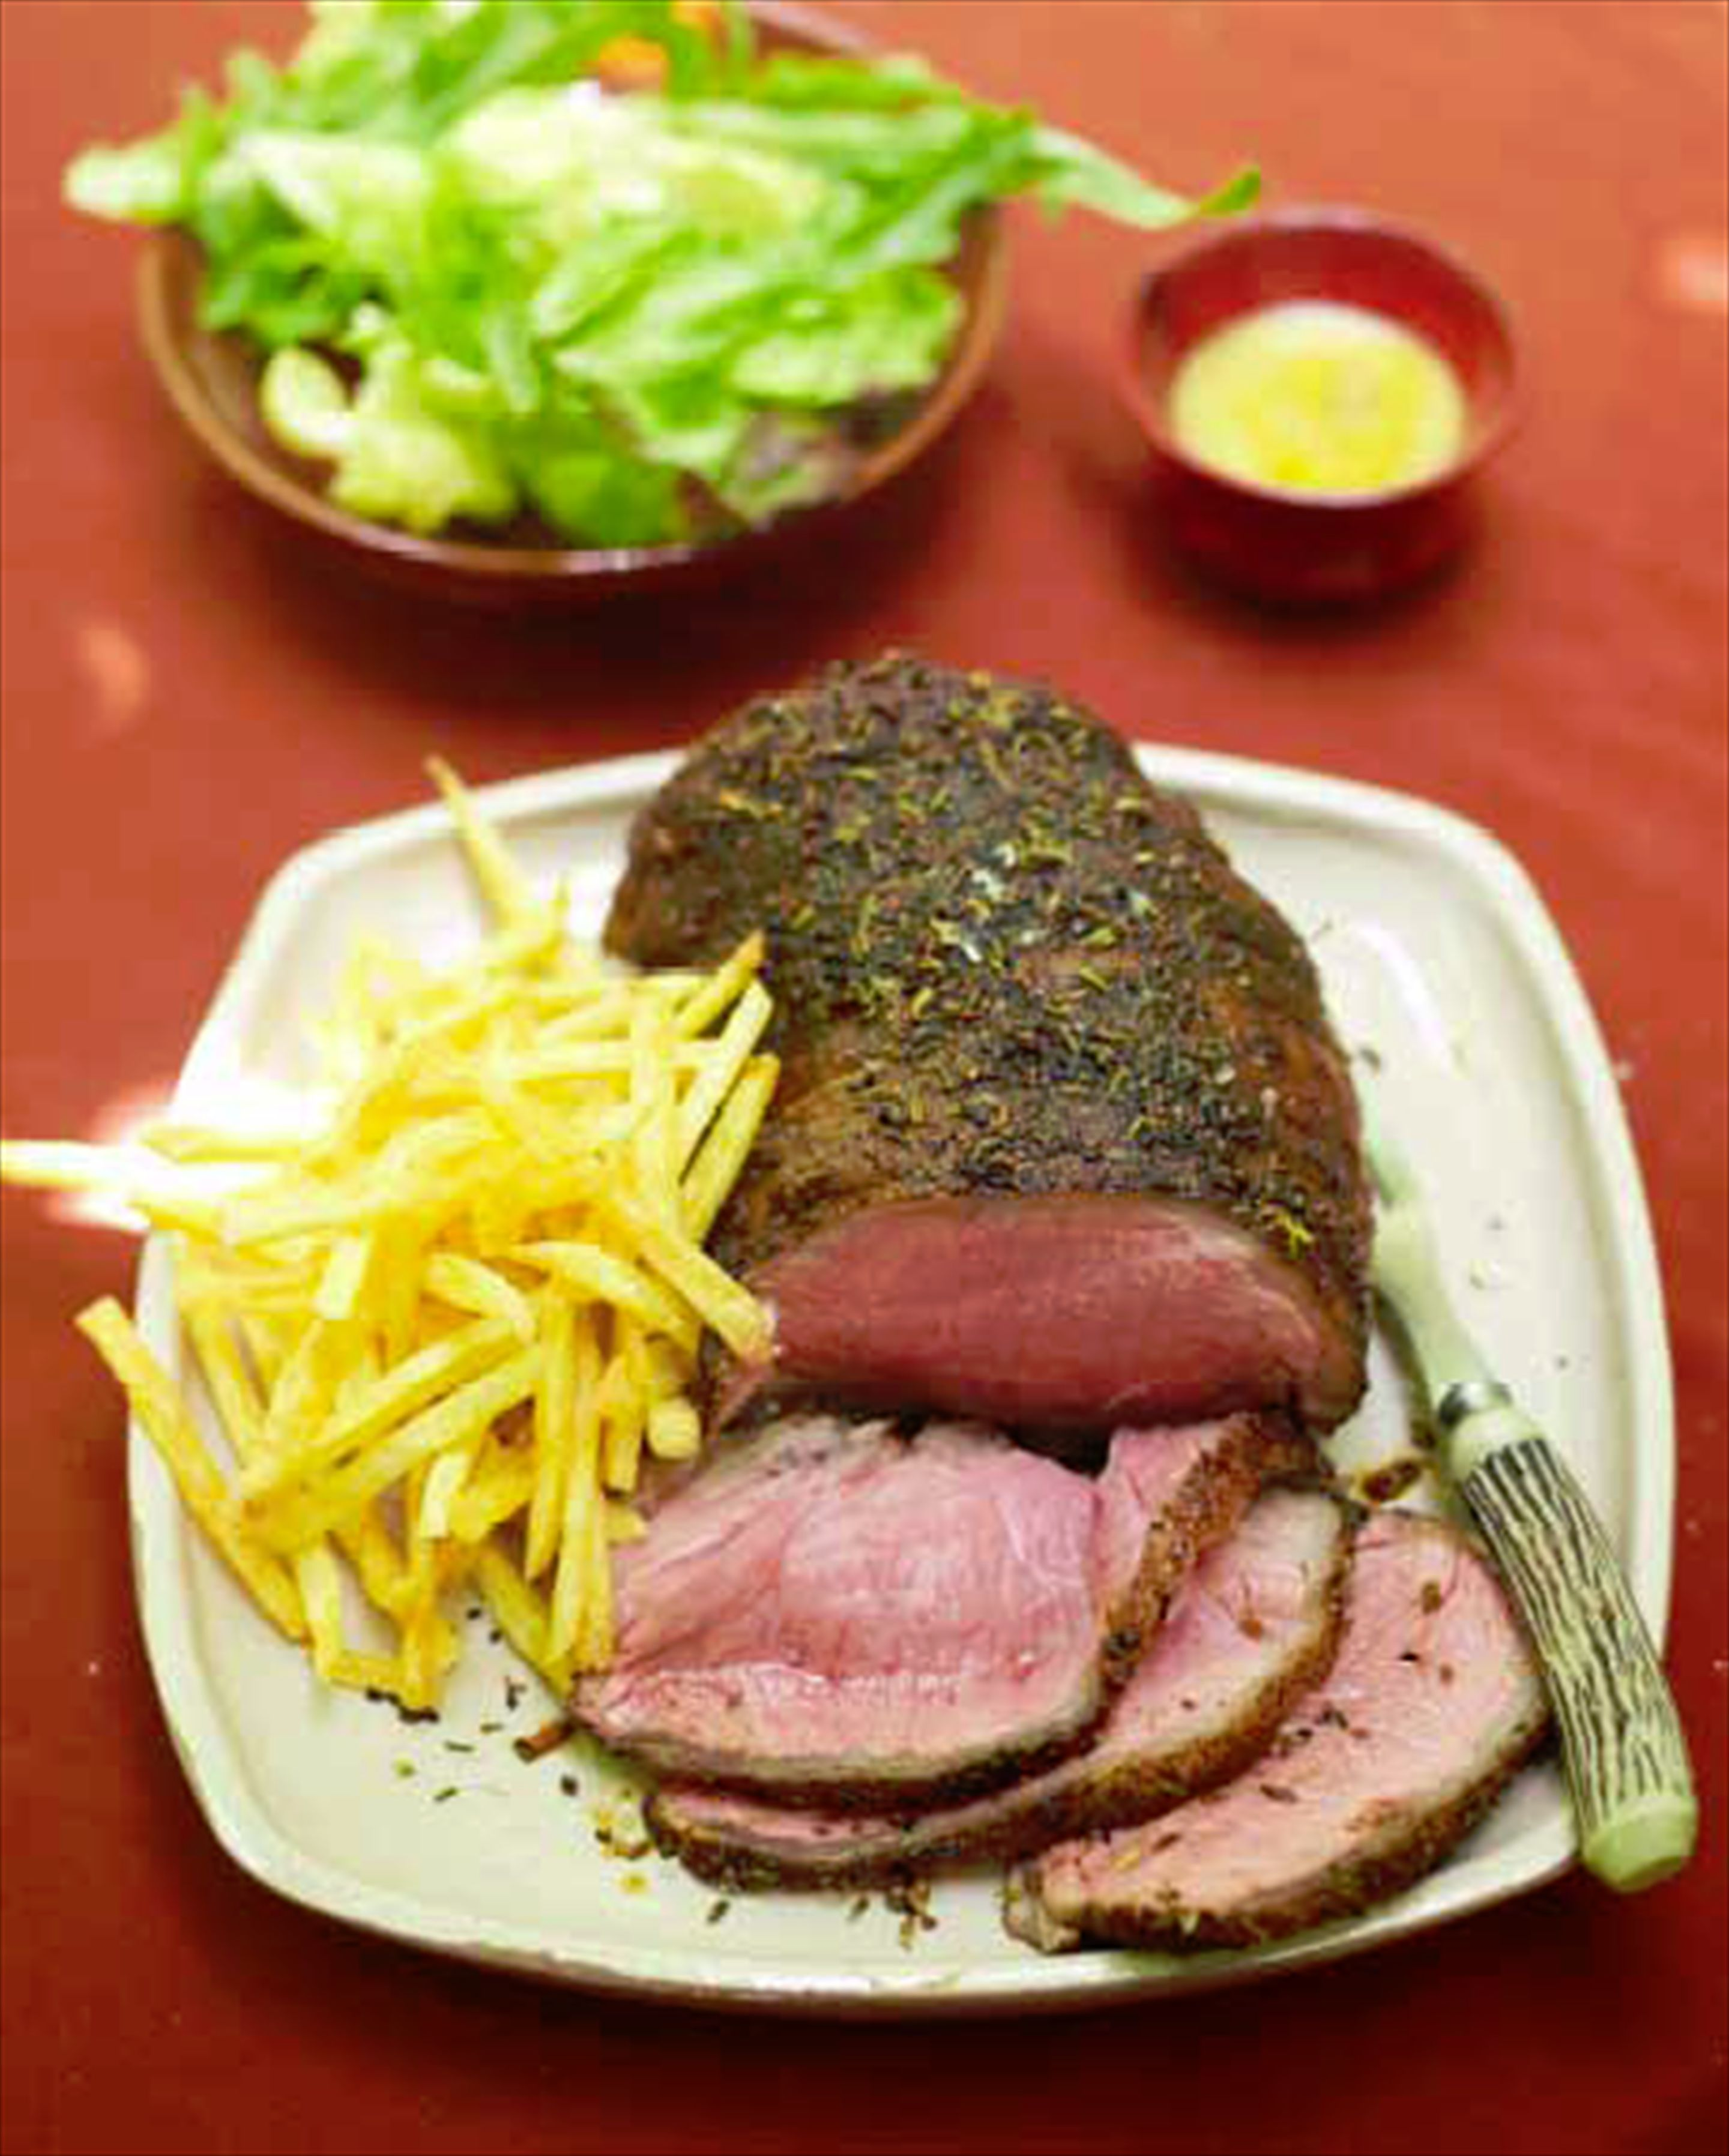 Roast spiced beef with french fries